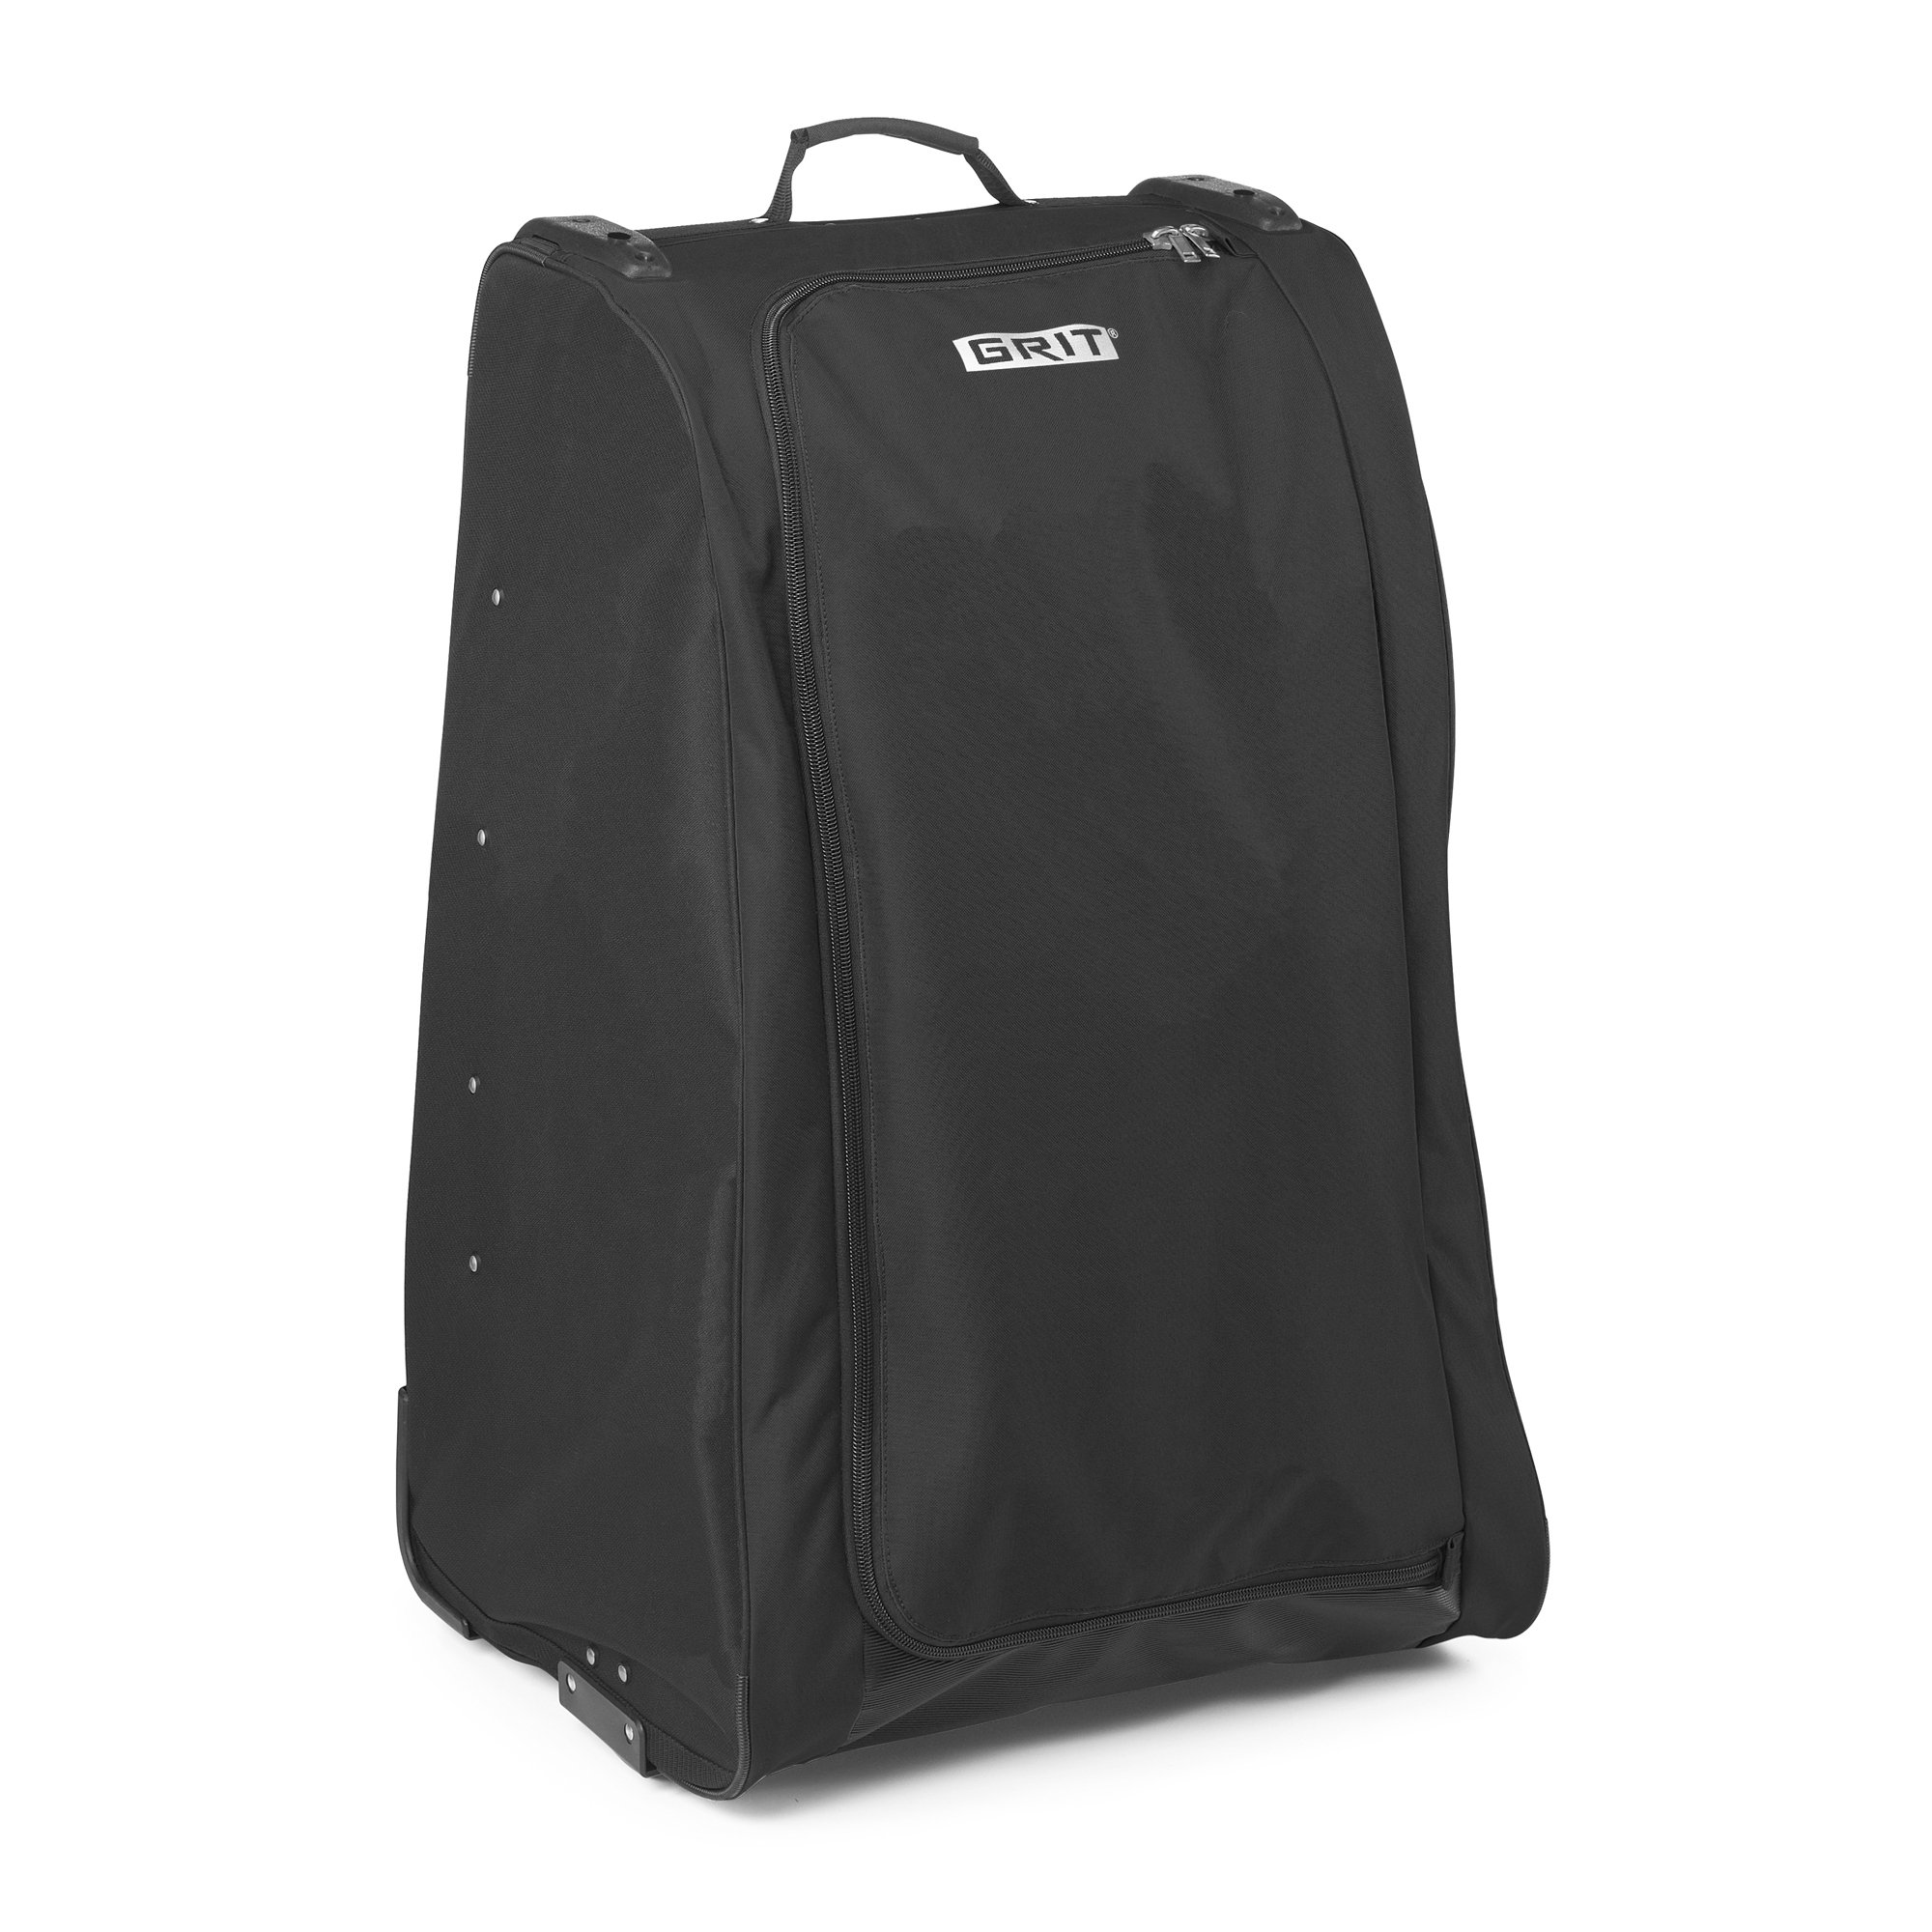 "Grit DT2 Dance Tower 33""(Bag Only)"